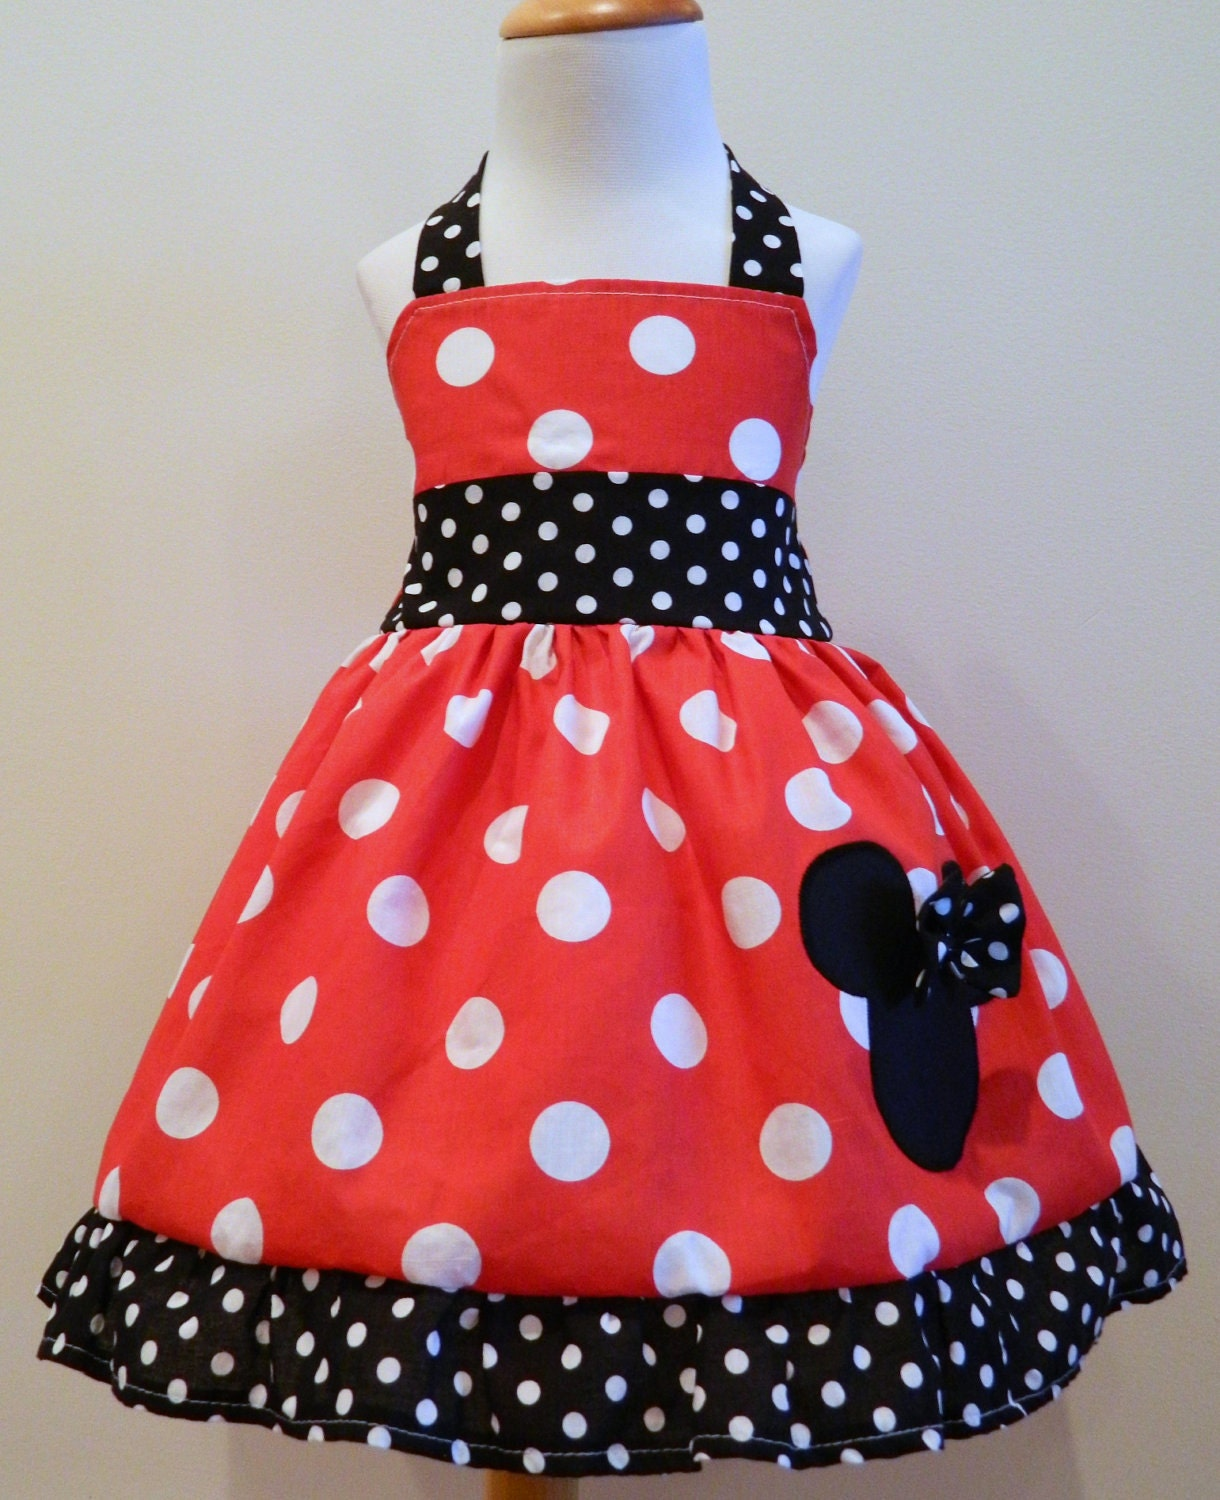 Find minnie mouse dress at Macy's Macy's Presents: The Edit - A curated mix of fashion and inspiration Check It Out Free Shipping with $75 purchase + Free Store Pickup.